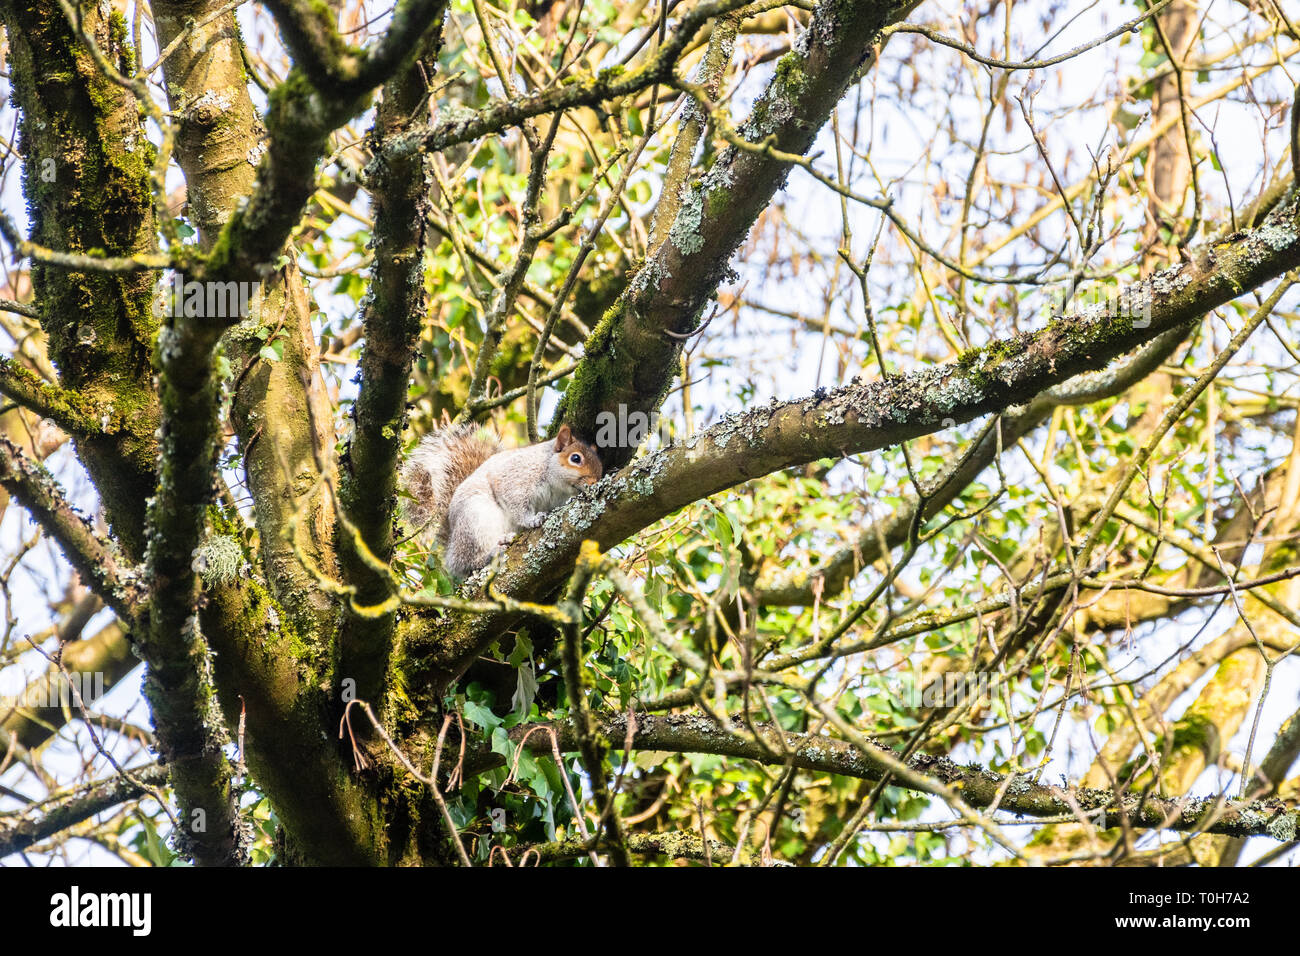 The invasive grey squirrel Sciurus carolinensis on a tree branch close to the top of the trunk. The tree shows growths of moss lichen and ivy. Stock Photo